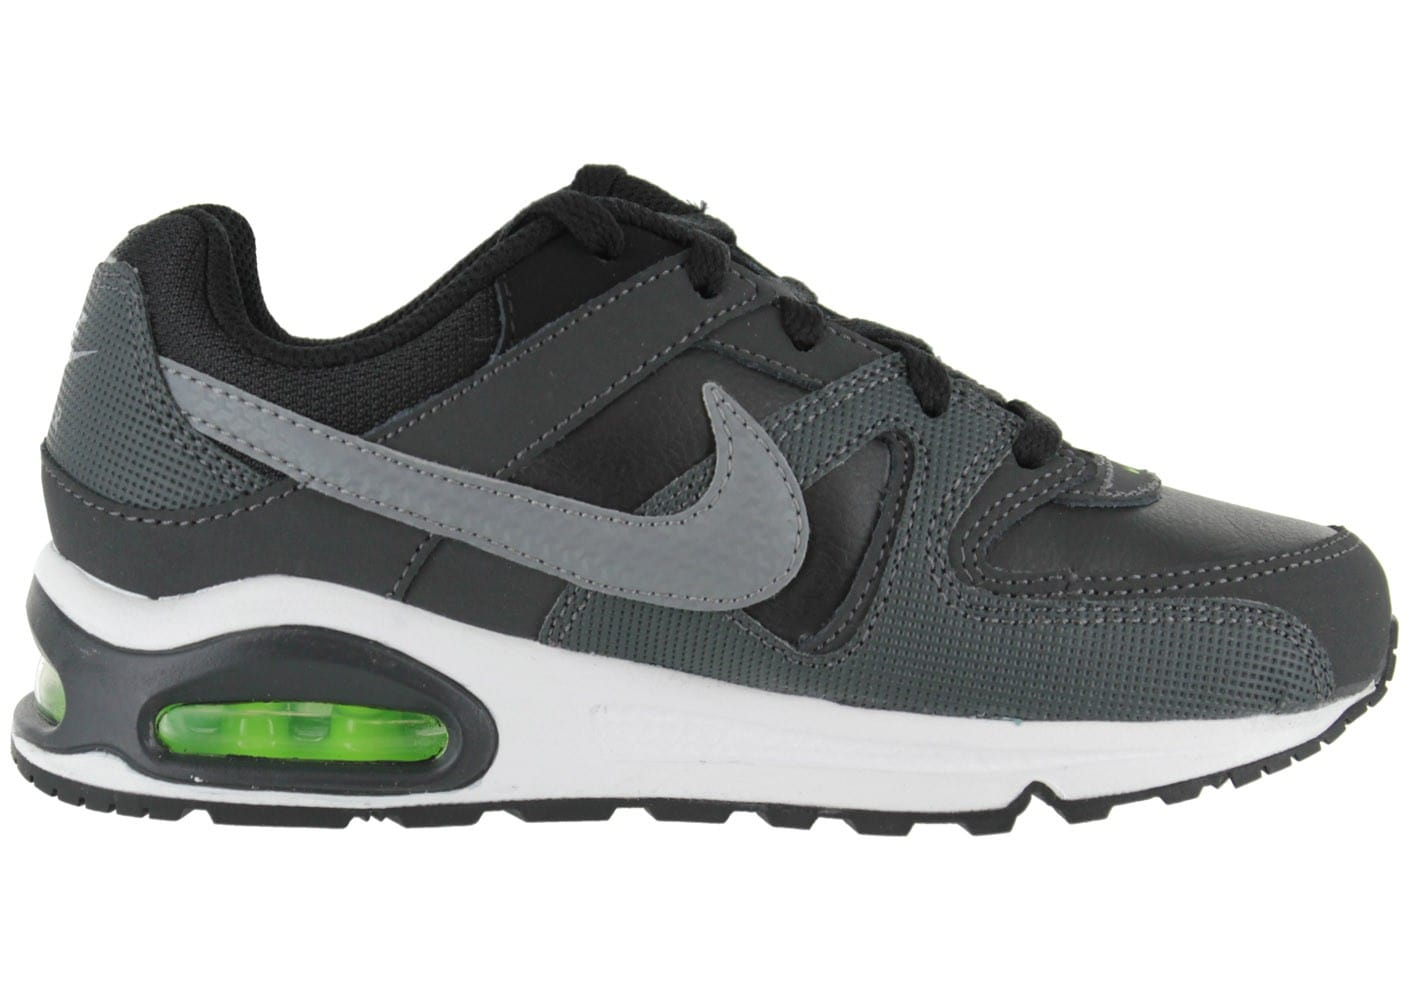 nike air max command enfant grise chaussures chaussures chausport. Black Bedroom Furniture Sets. Home Design Ideas